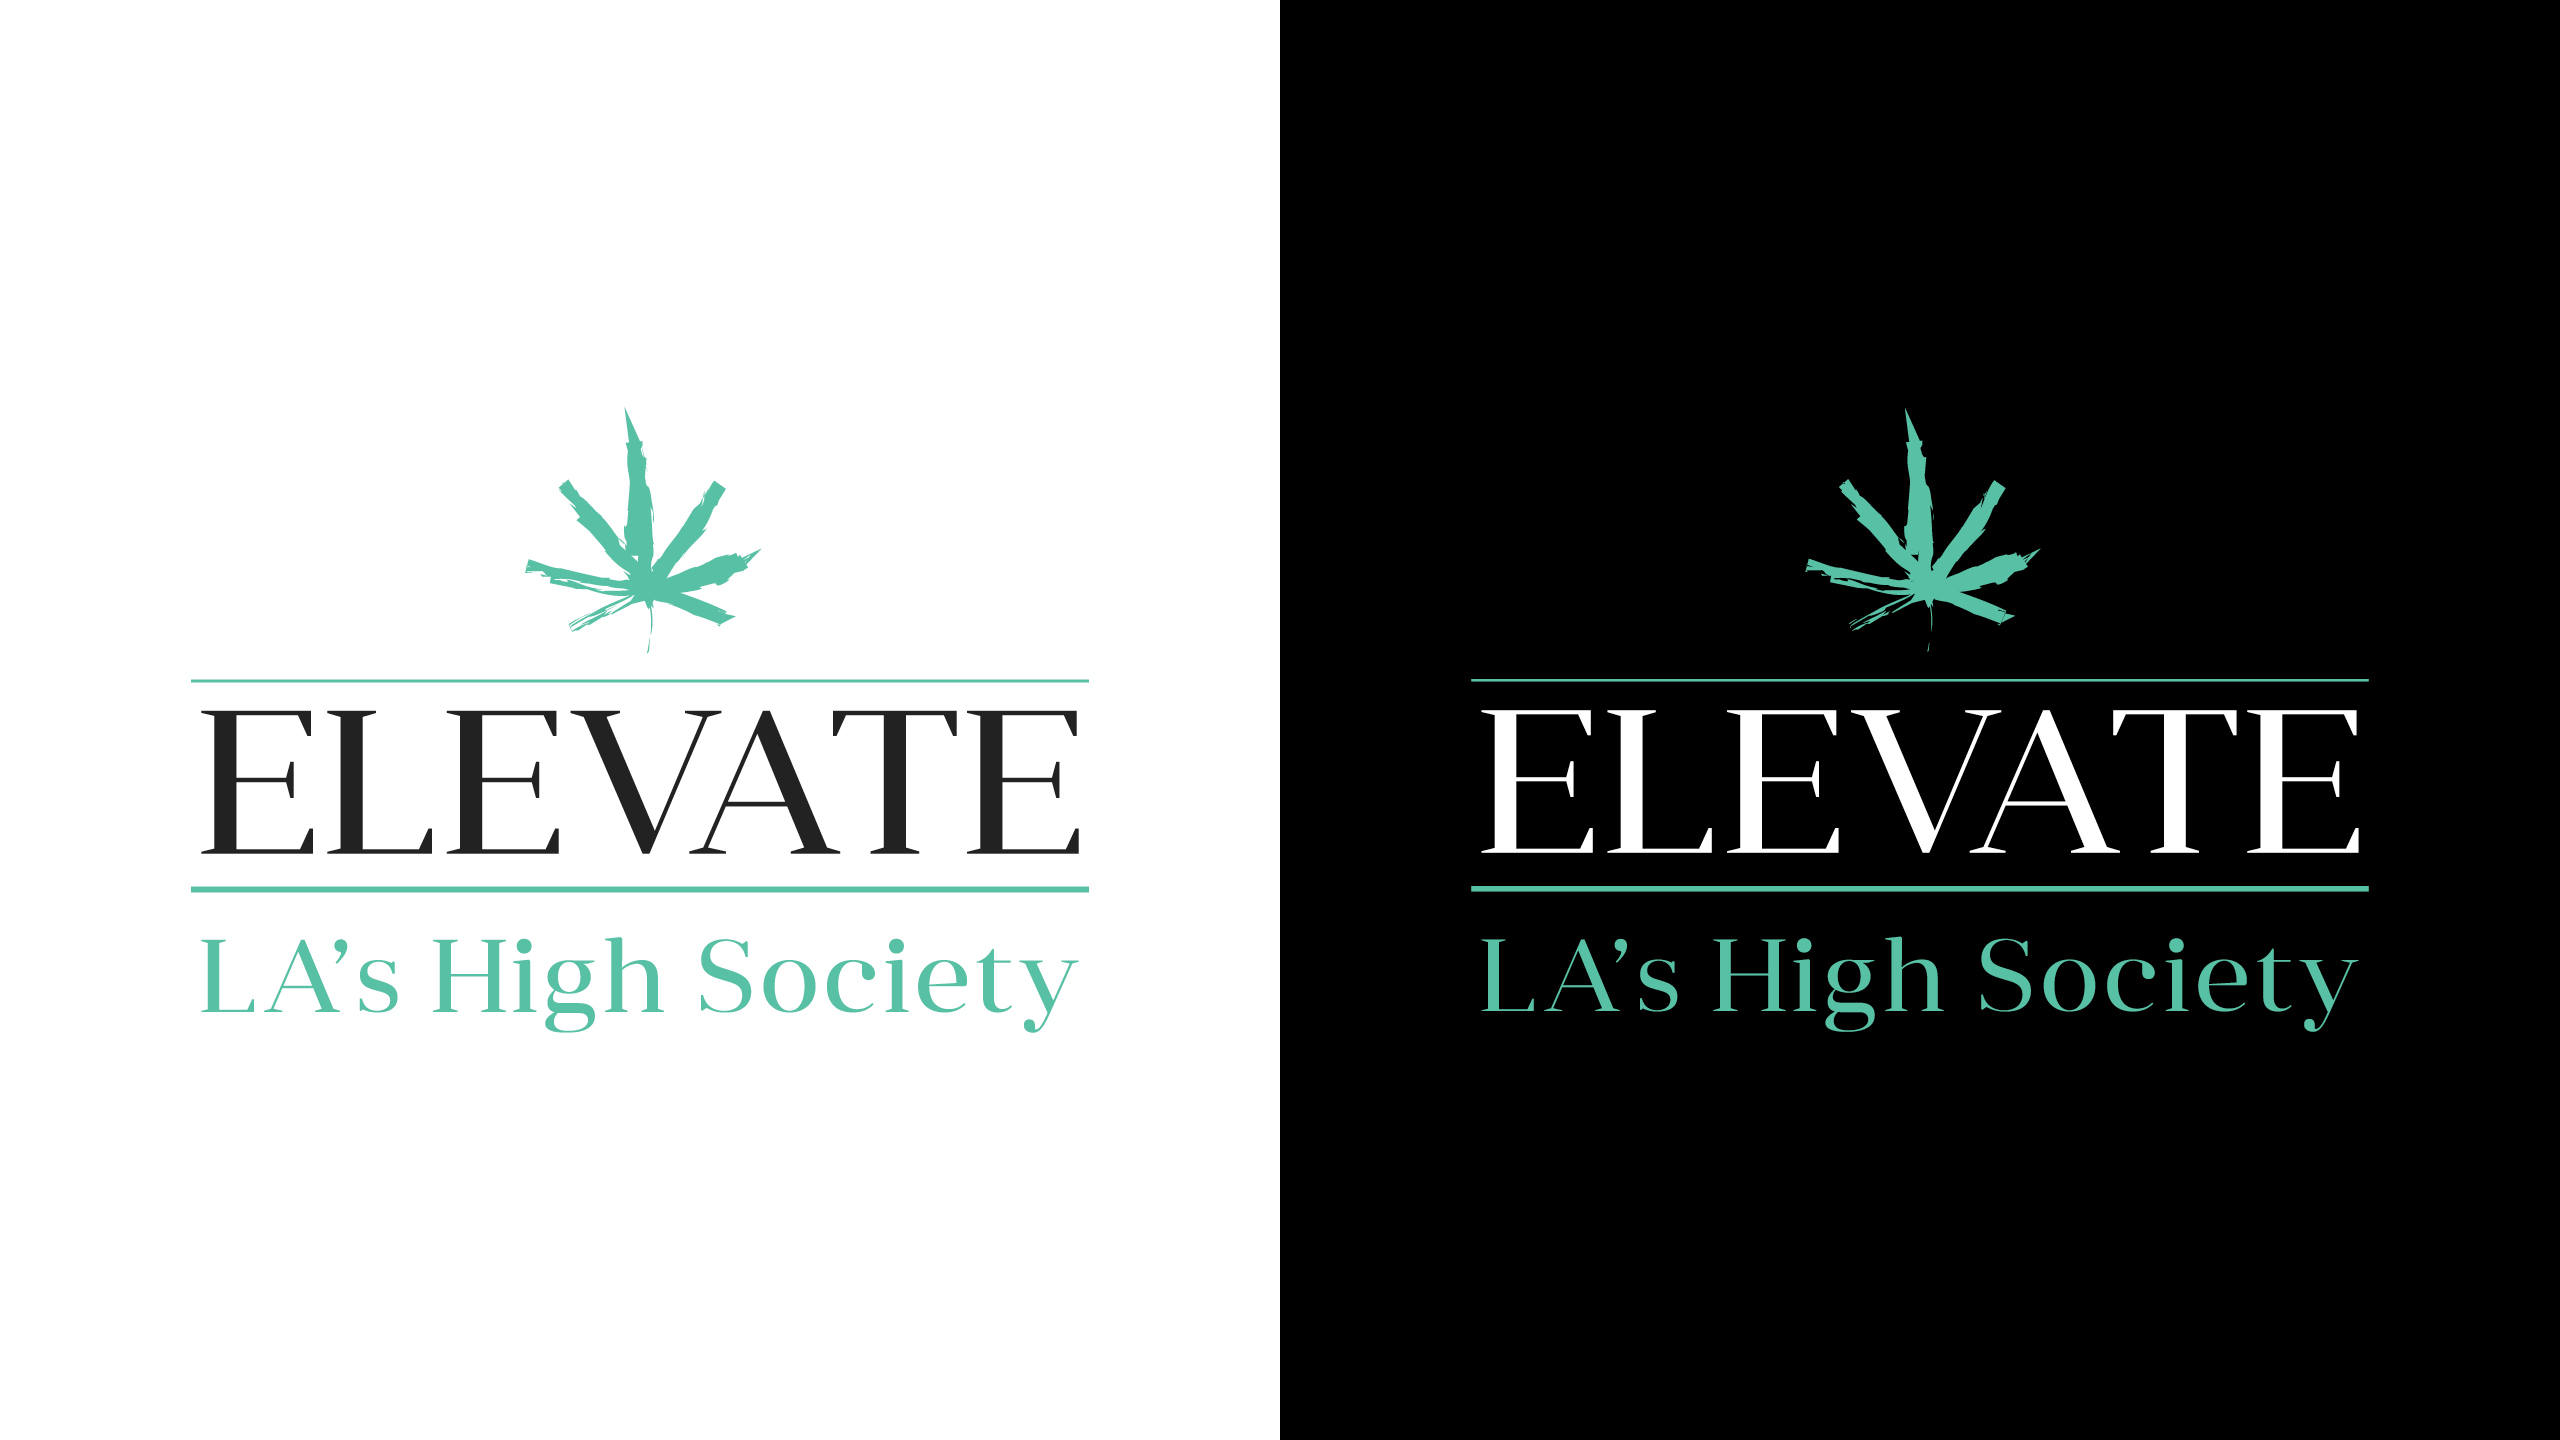 Elevate Dispensary Brand Identity & Logo Creation by High Road Design Studio